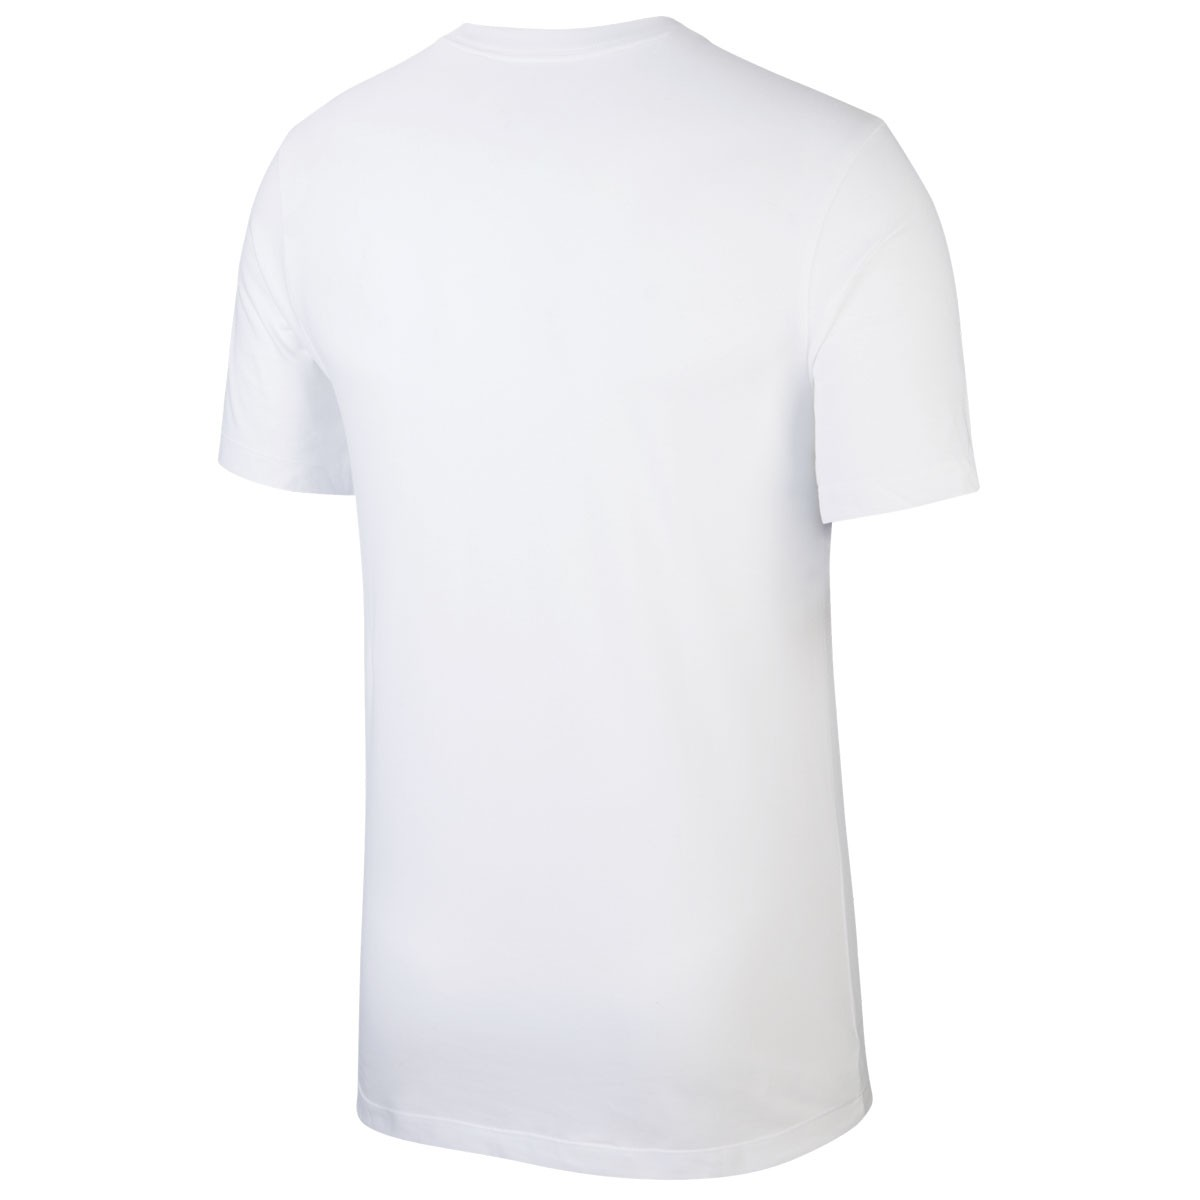 classic fit 04cc7 b84e0 Jordan T-Shirt Streets to Stadiums  White  AT0560-100